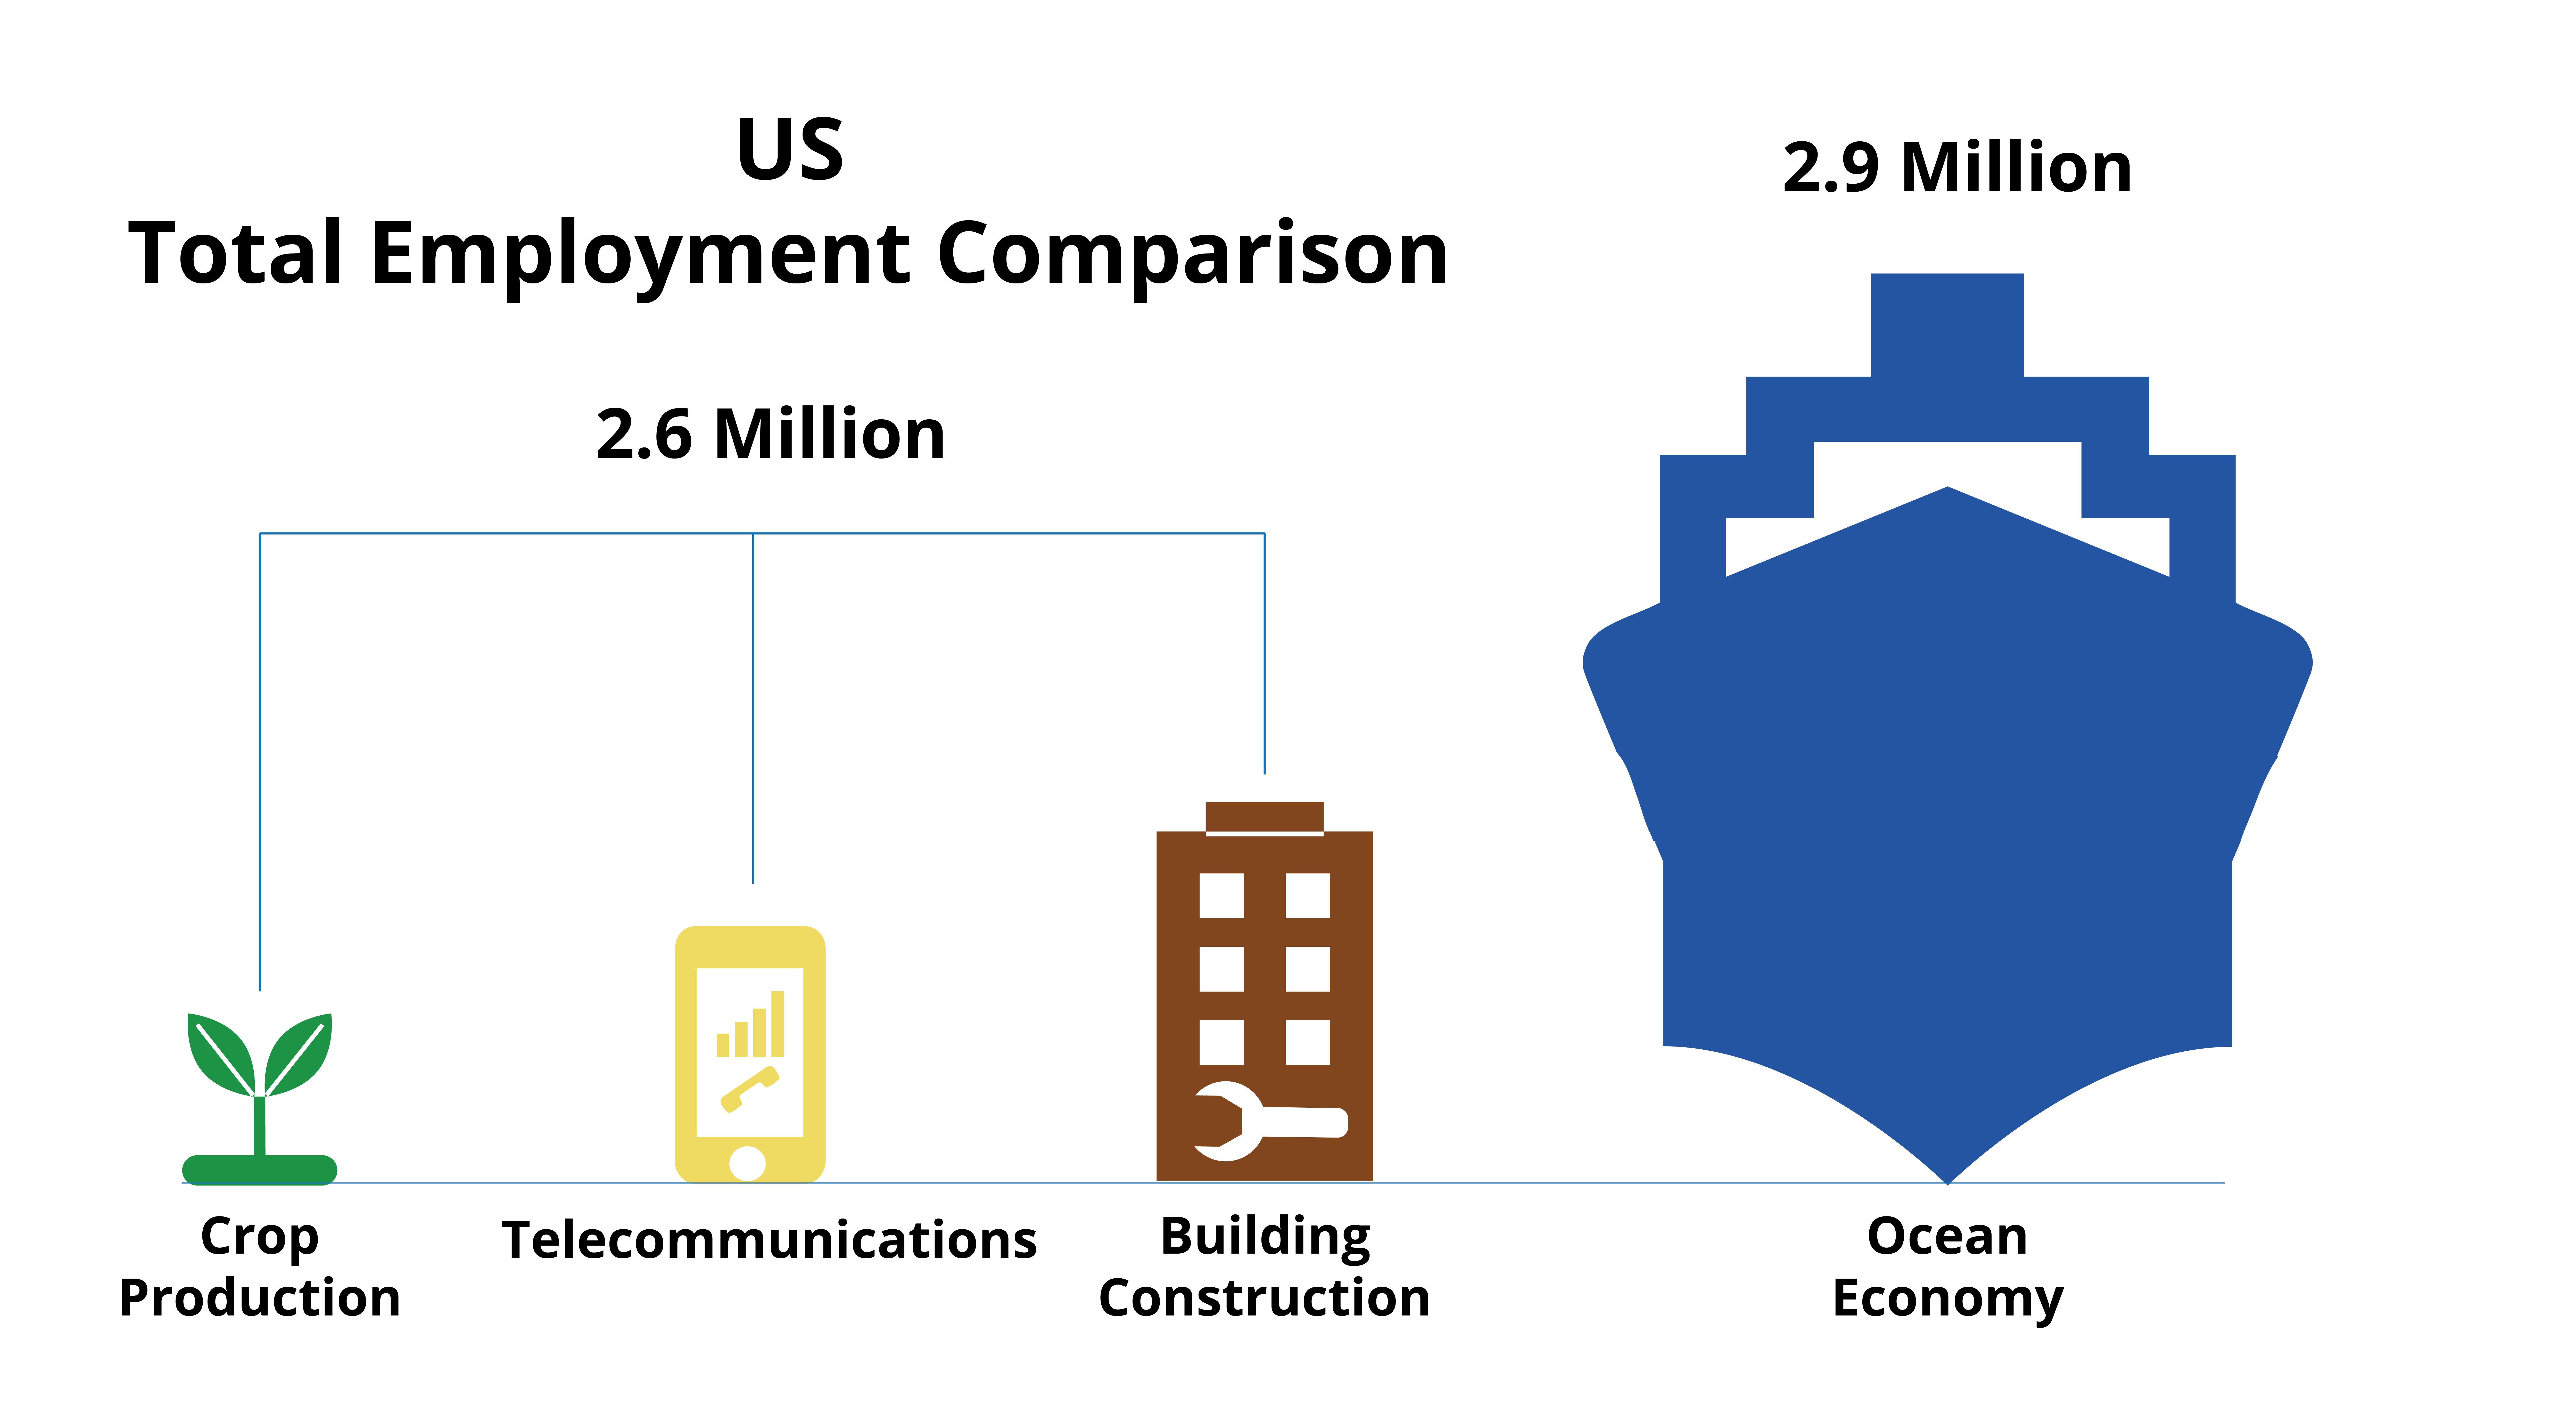 Employment comparison in U.S. total and ocean economic